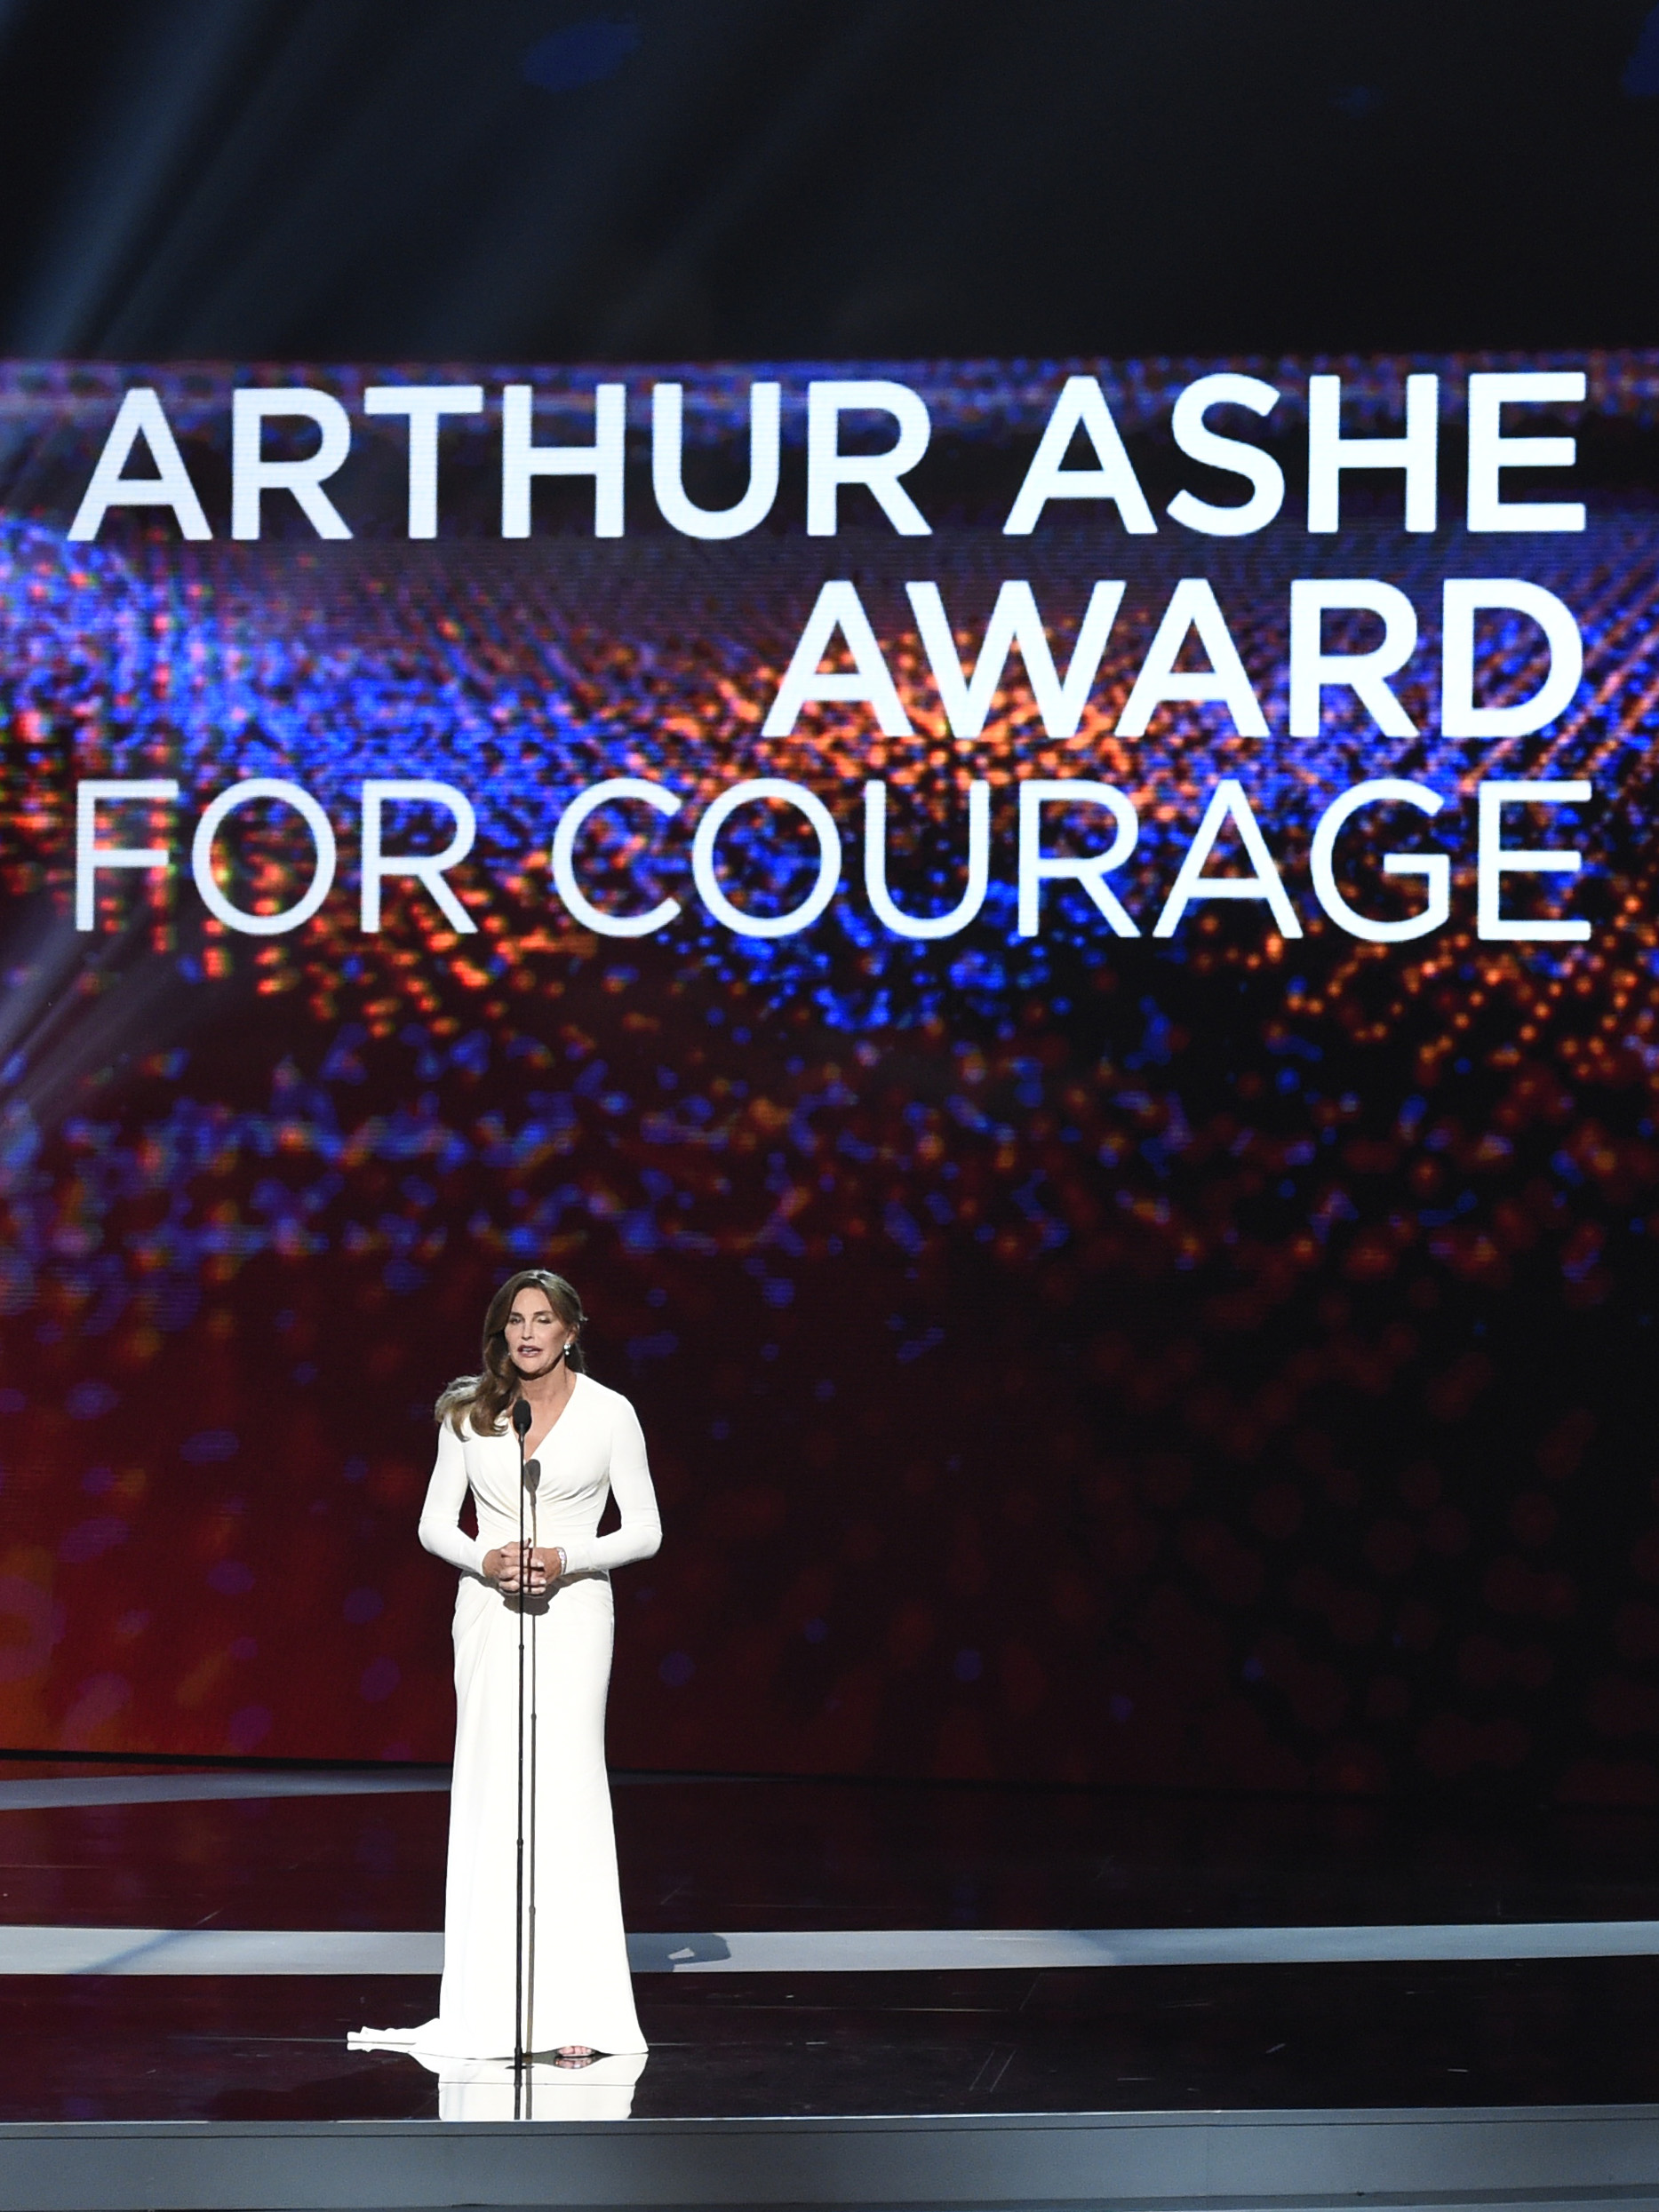 Caitlyn Jenner accepts the Arthur Ashe award for Courage at the ESPY Awards at the Microsoft Theater on July 15, 2015.